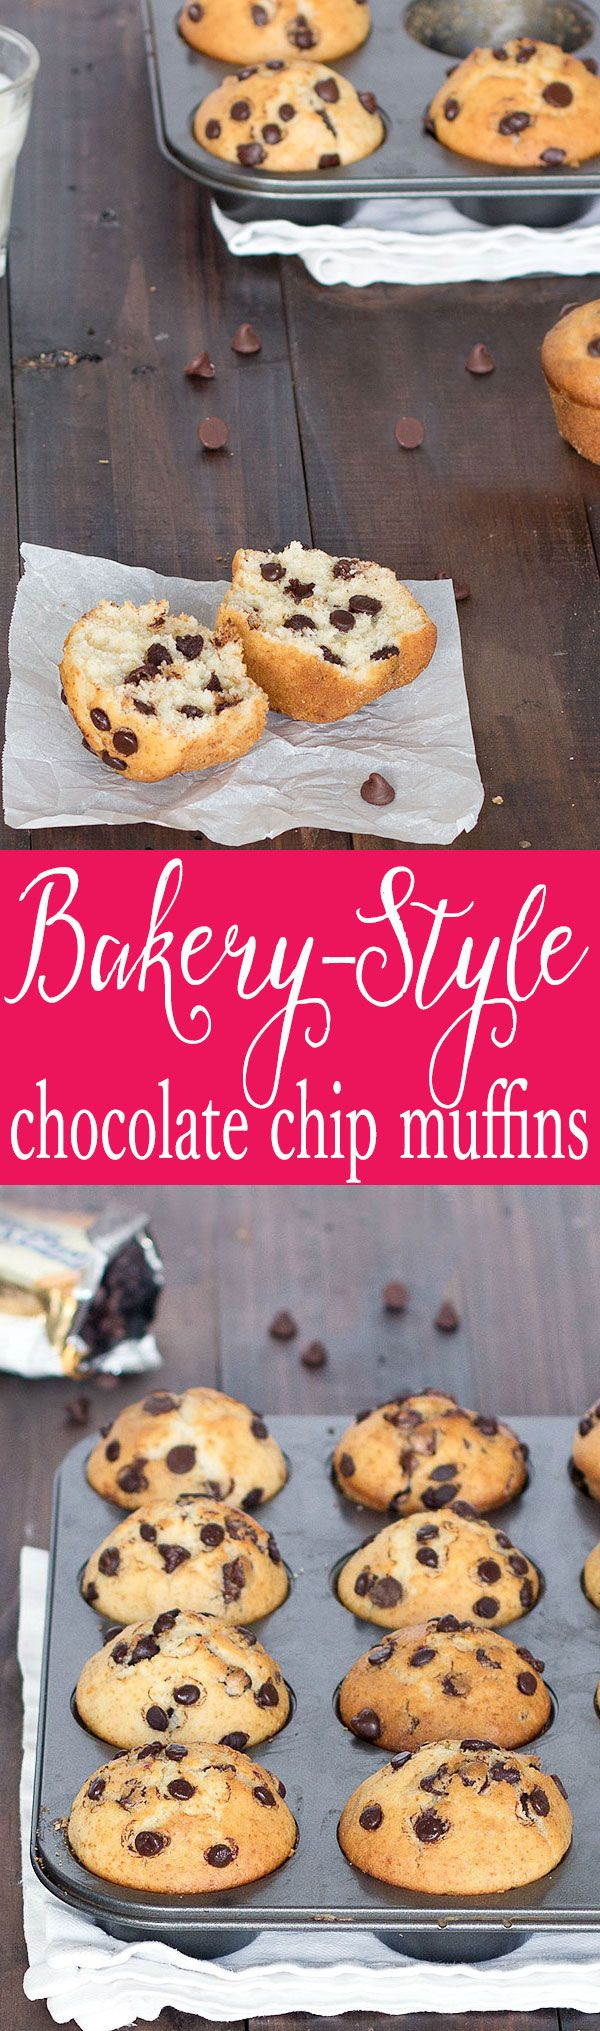 Enjoy these fabulous bakery-style chocolate chip muffins with your morning coffee and/or as an afternoon snack. They're soft, fluffy, and packed with chocolate chips!